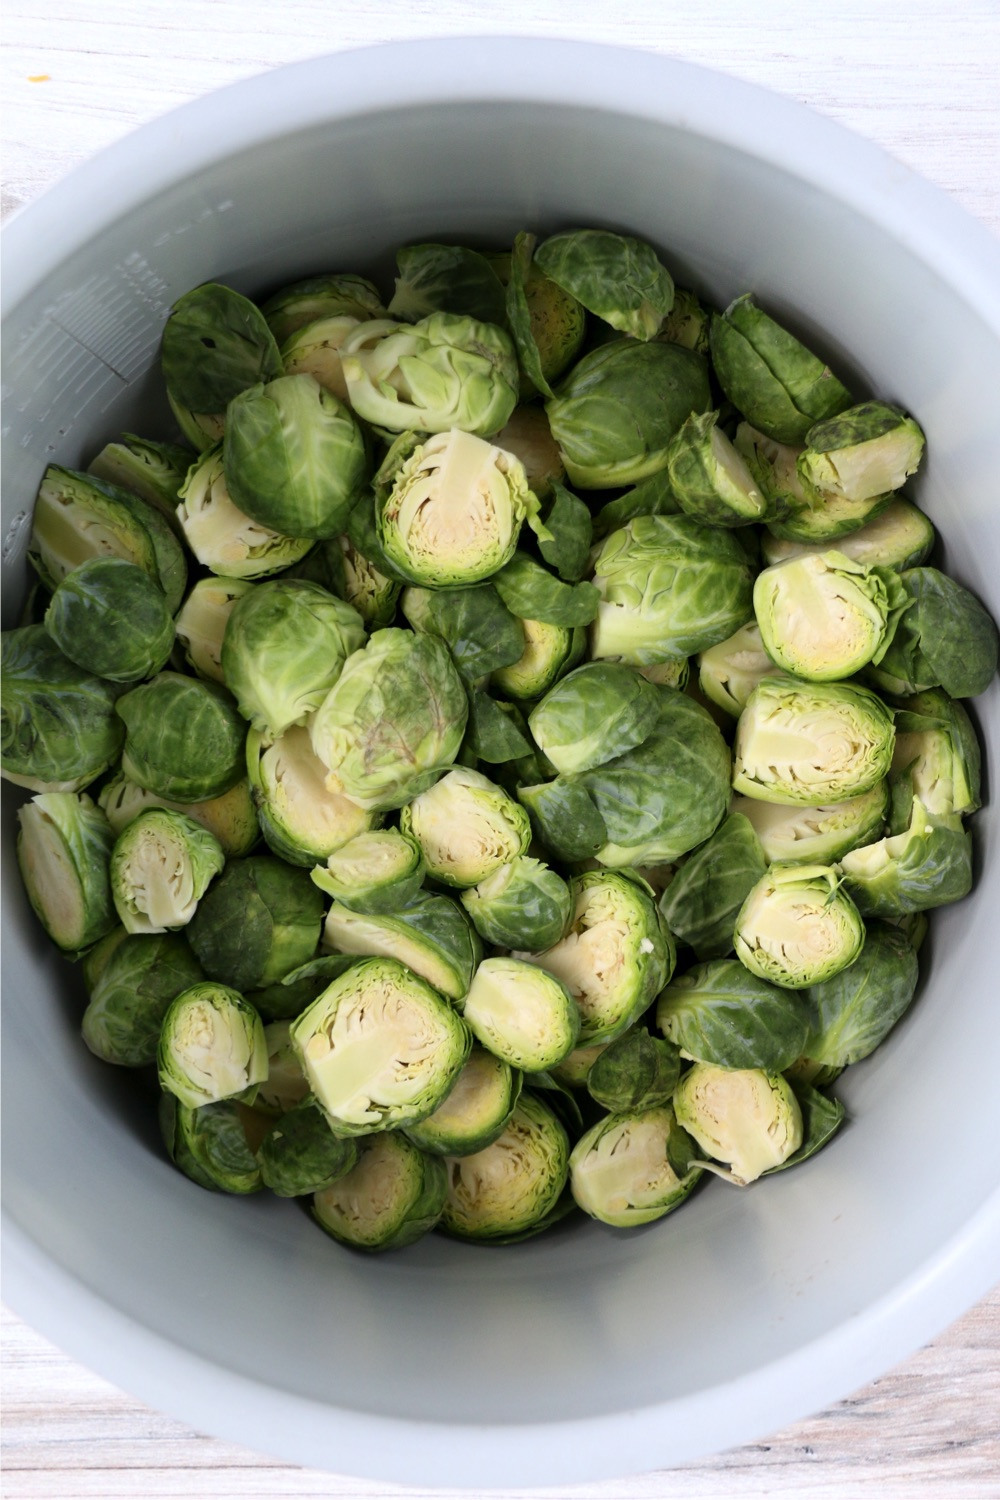 Ninja Foodi cooking pot with brussels sprouts